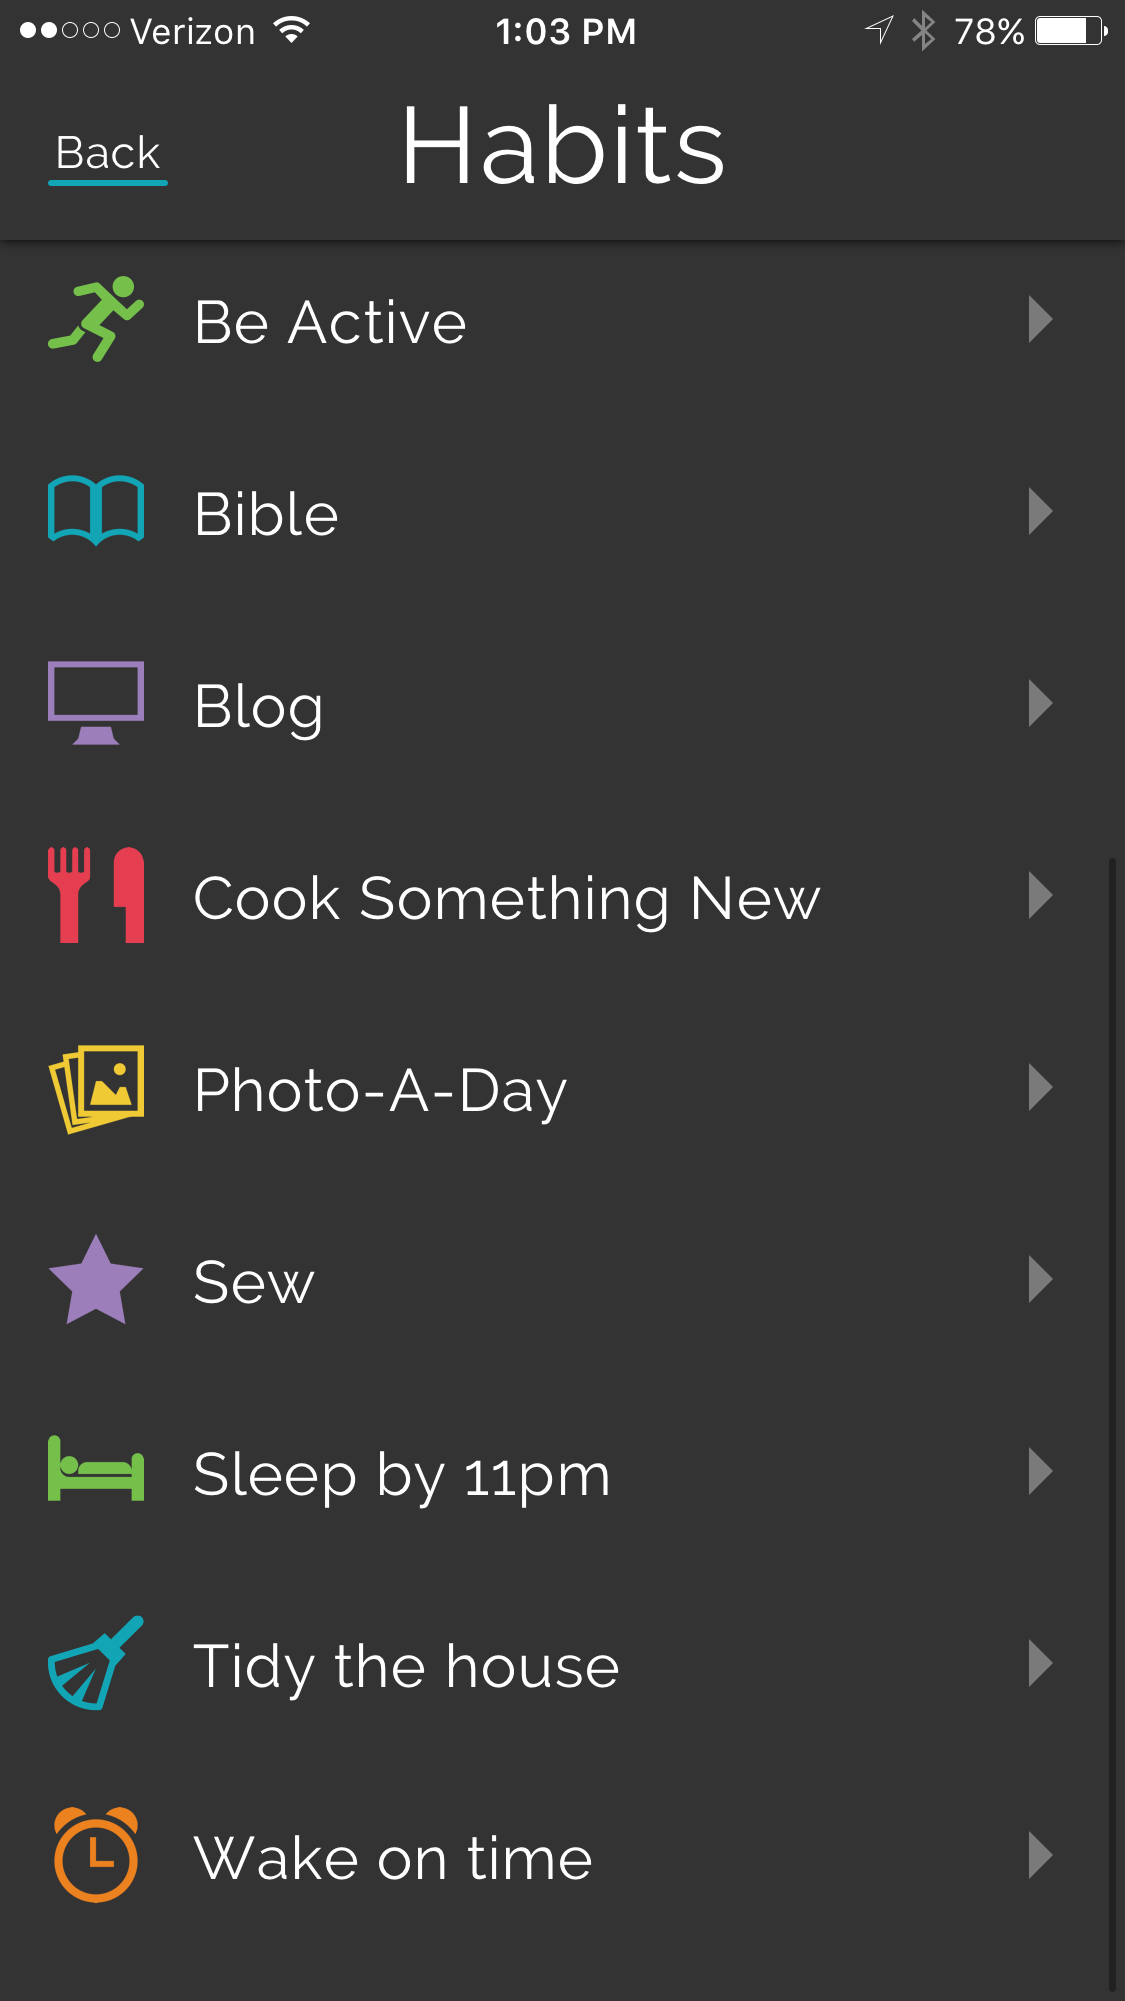 daily habits and goals for may using the productive app!